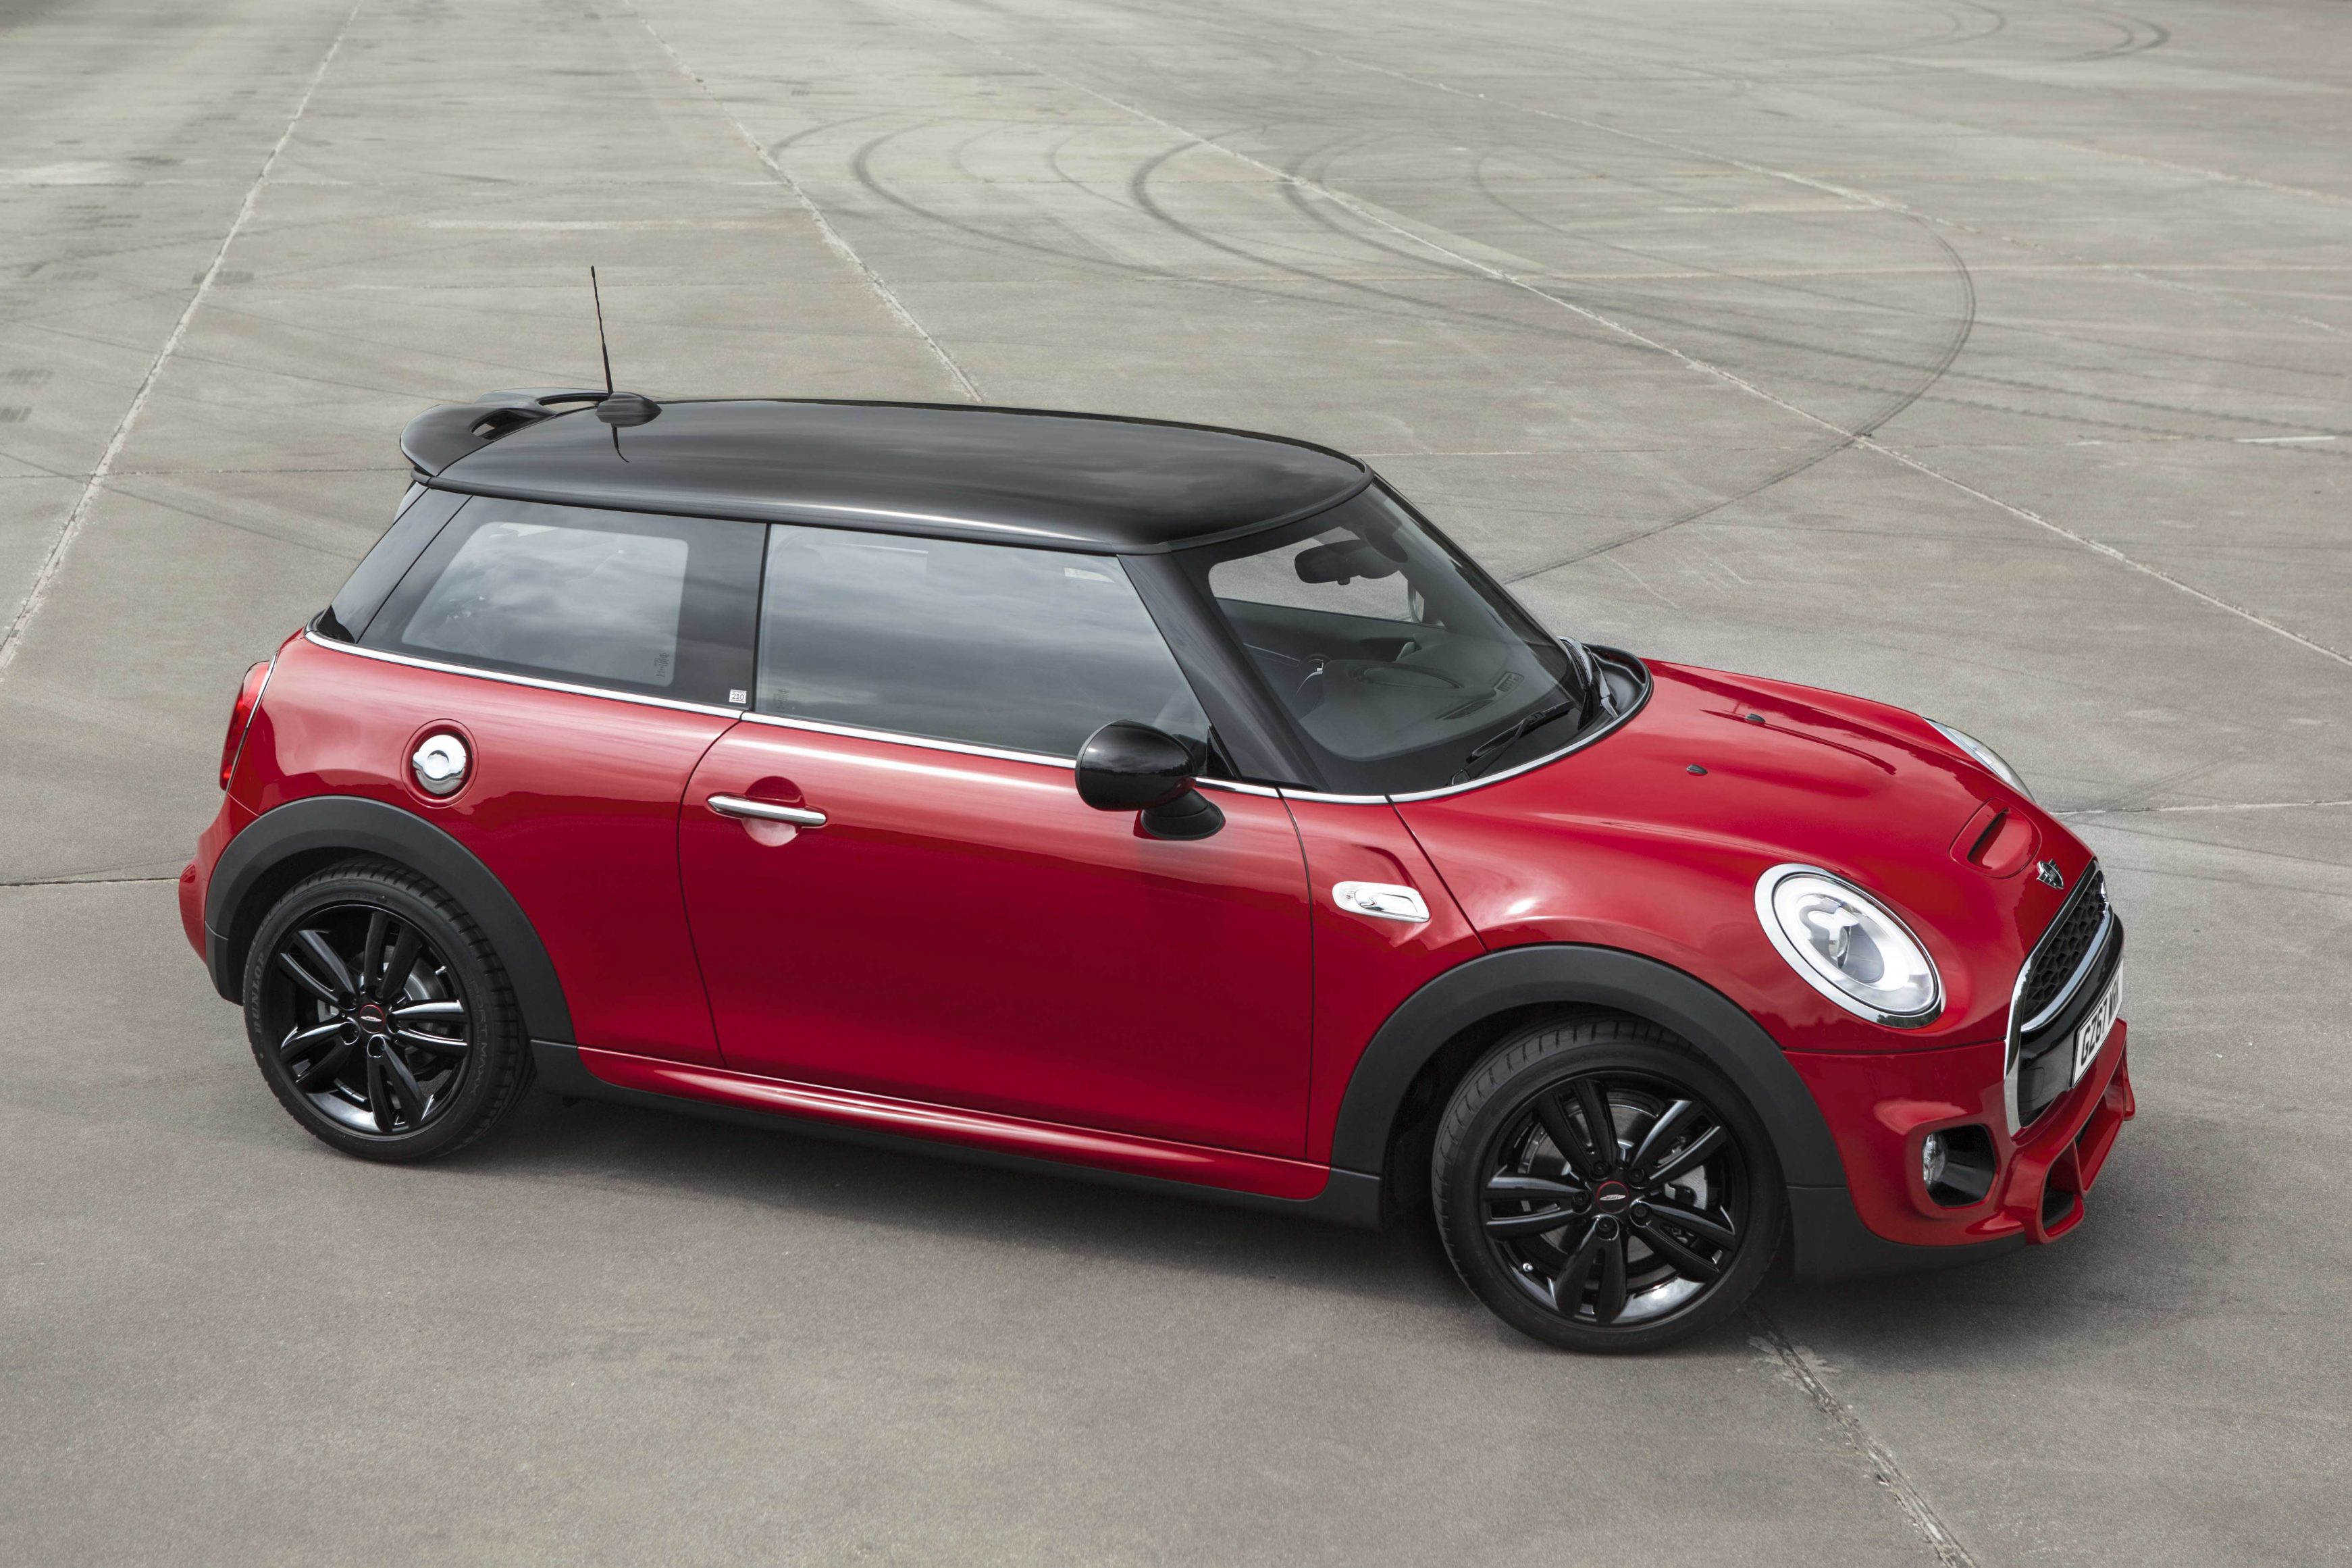 Mini Cooper S in red and black on a plot of land